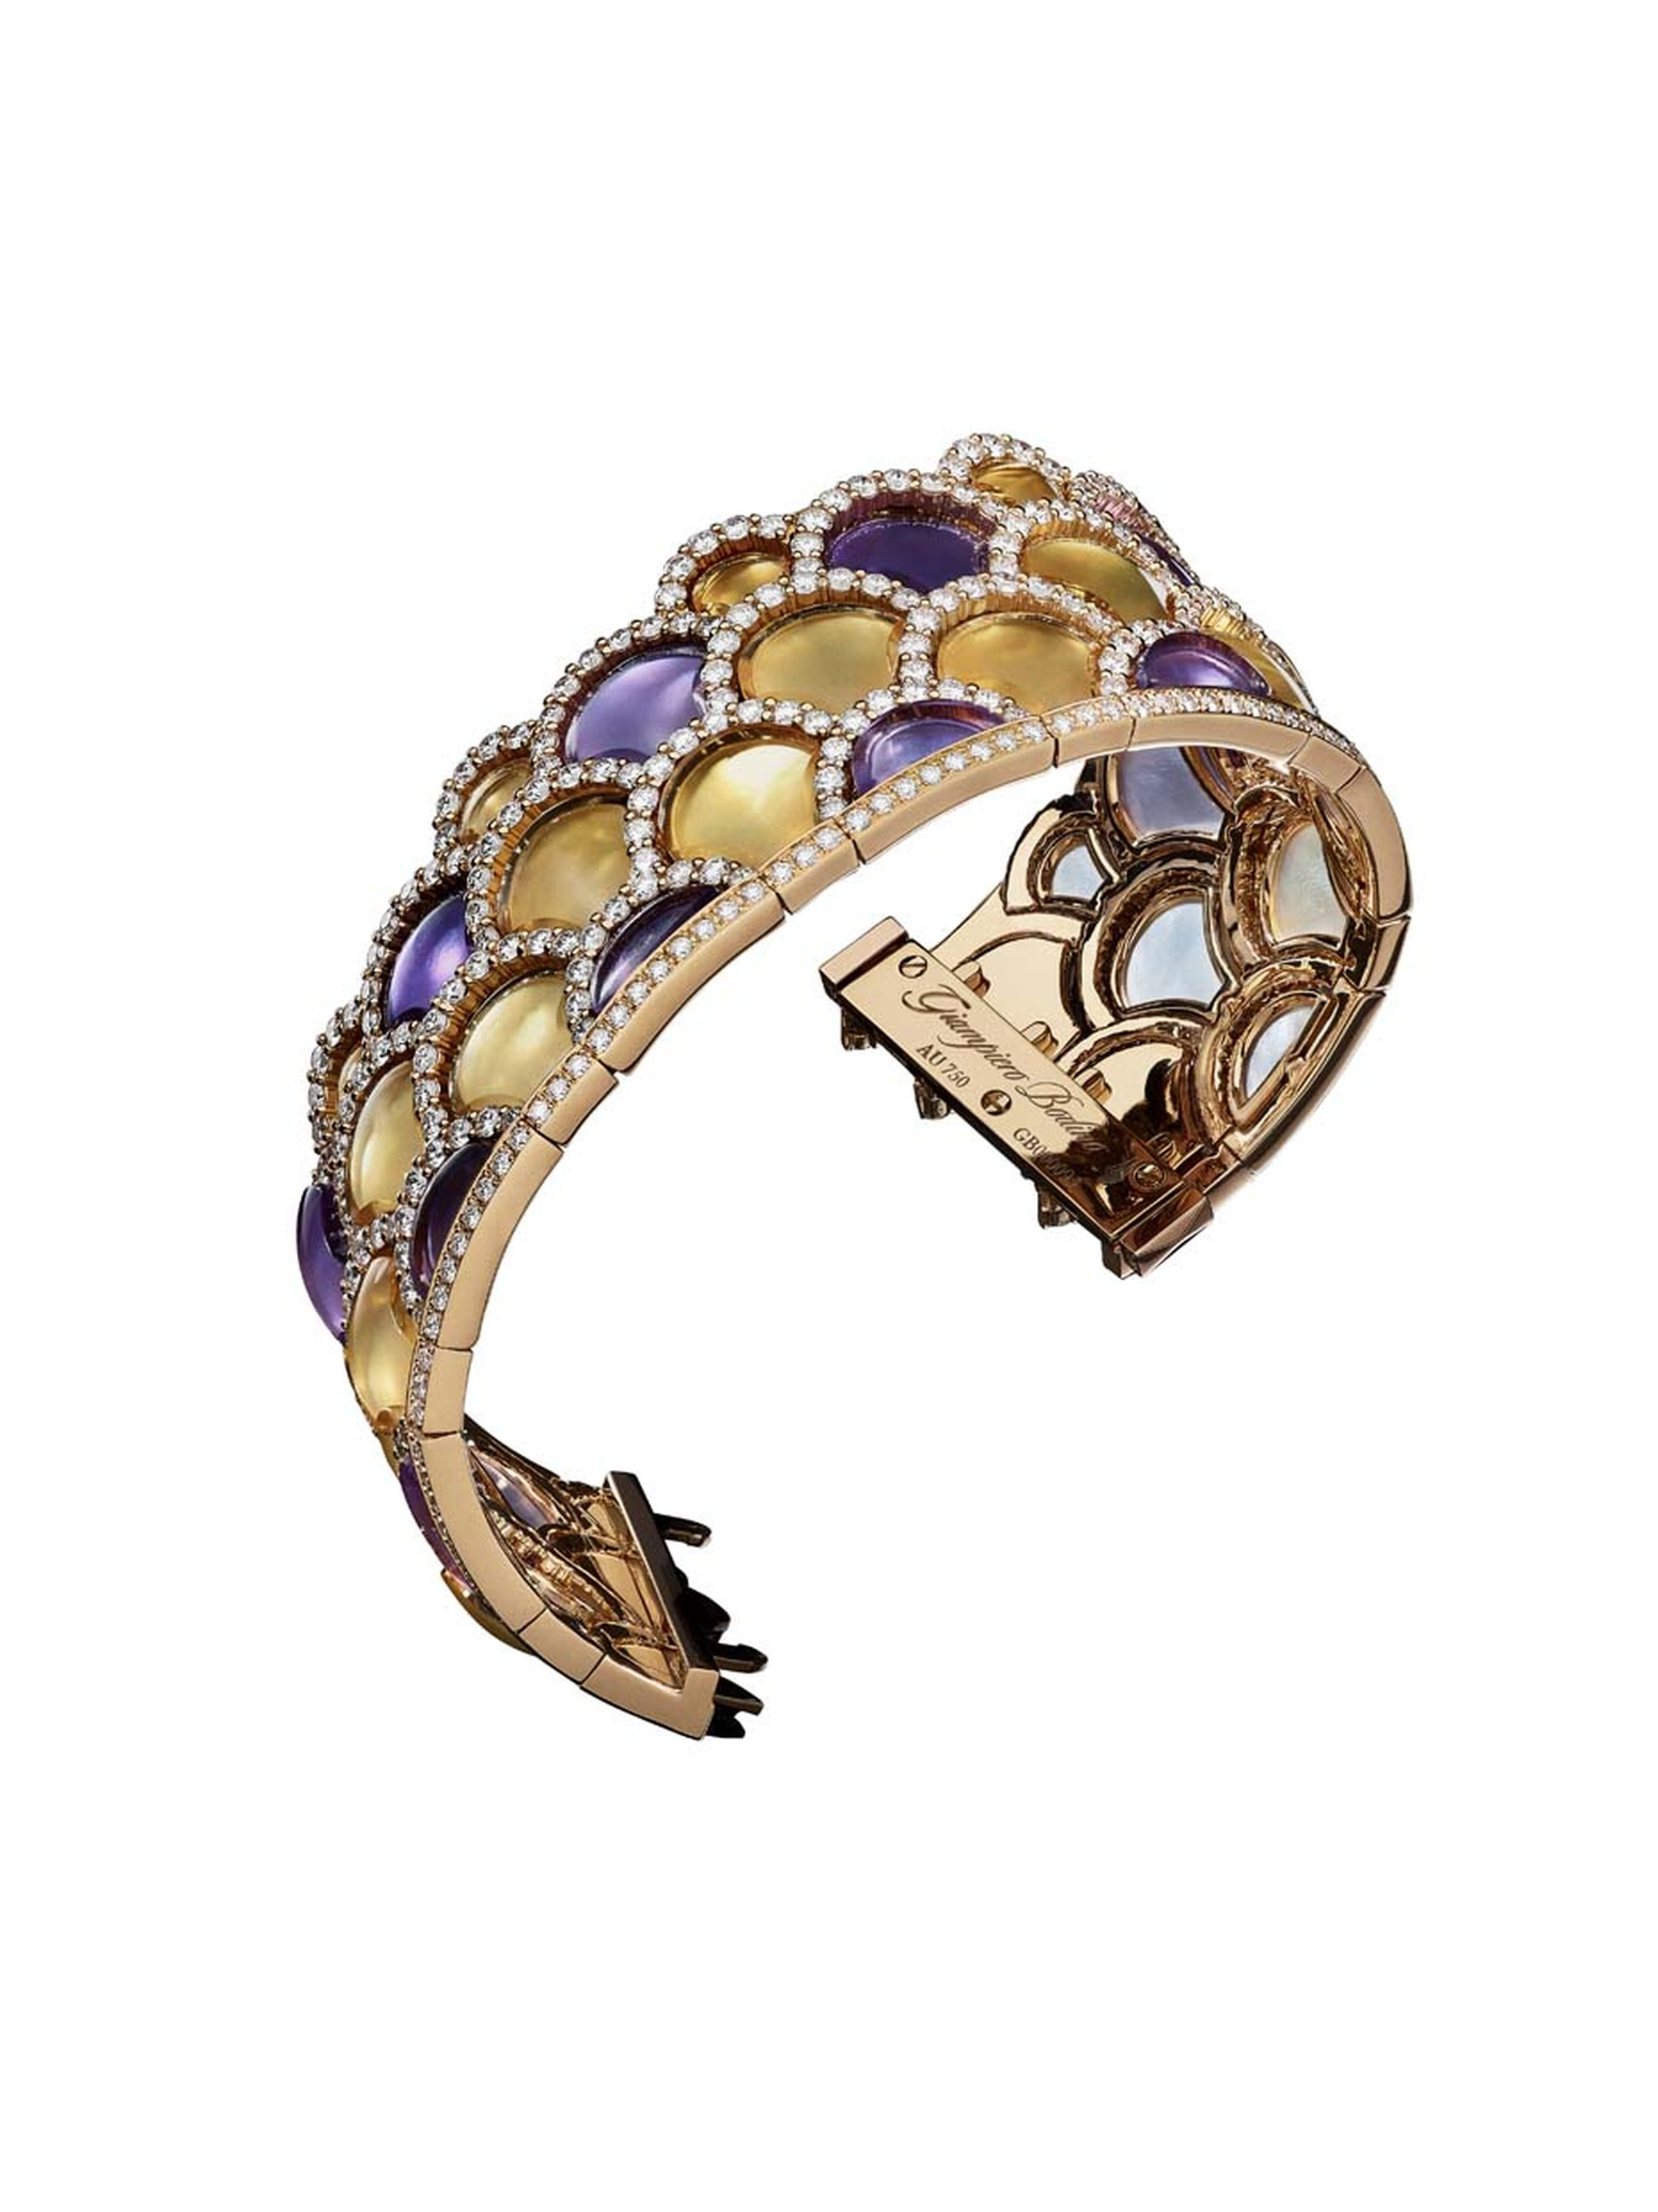 Giampiero Bodino Mosaic bracelet featuring layers of amethyst and citrine outlined by diamonds. Image: Laziz Hamani.